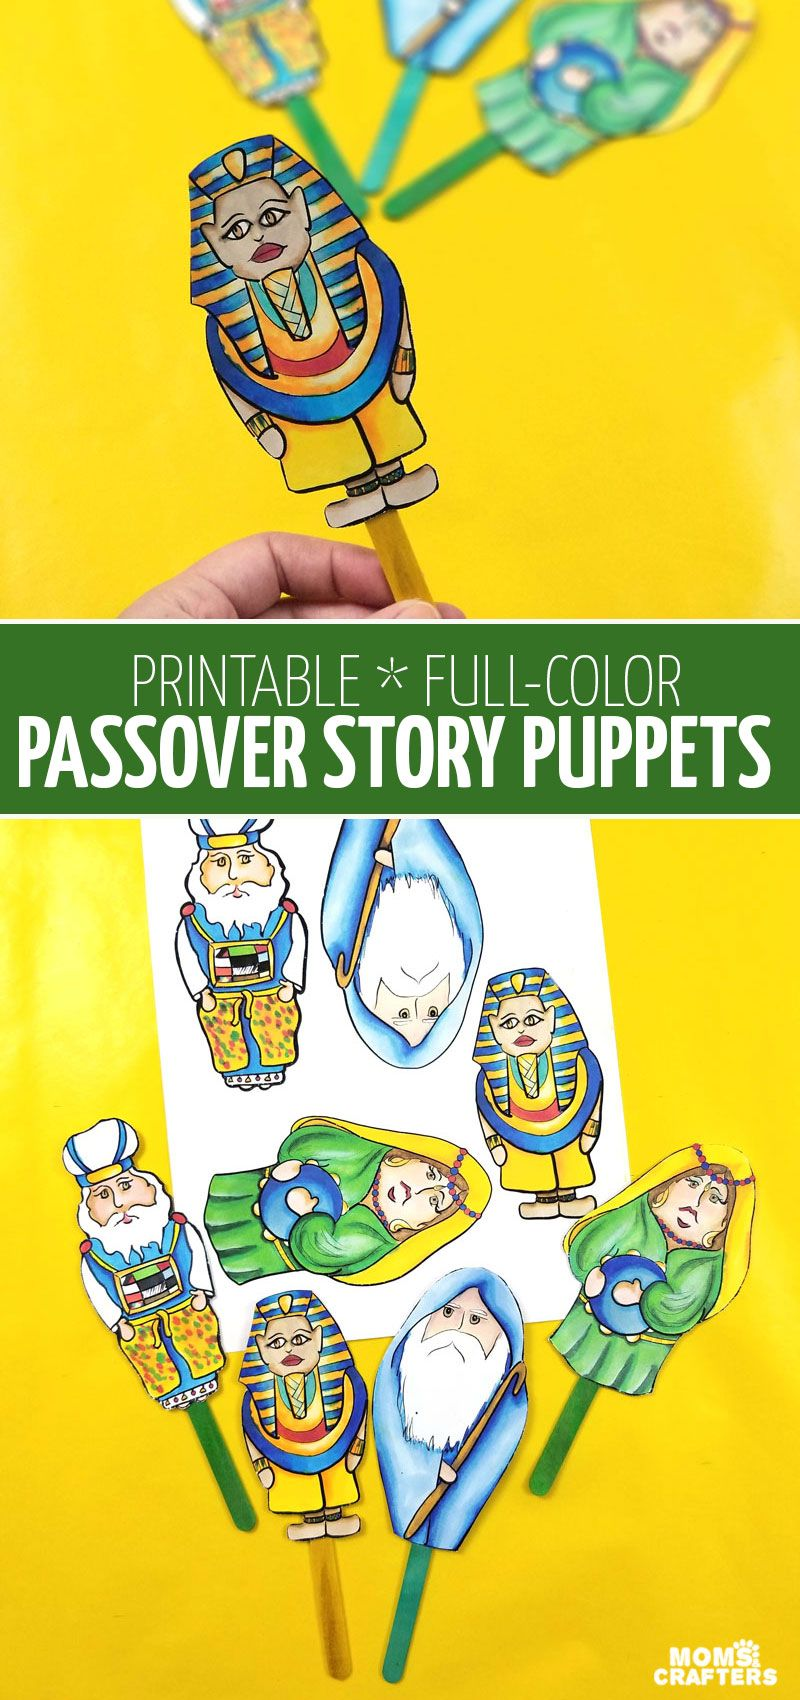 Passover Puppets Puppets Fun Printable Pesach Puppets Full Etsy In 2021 Pesach Crafts Passover Crafts Pillow Crafts [ 1700 x 800 Pixel ]